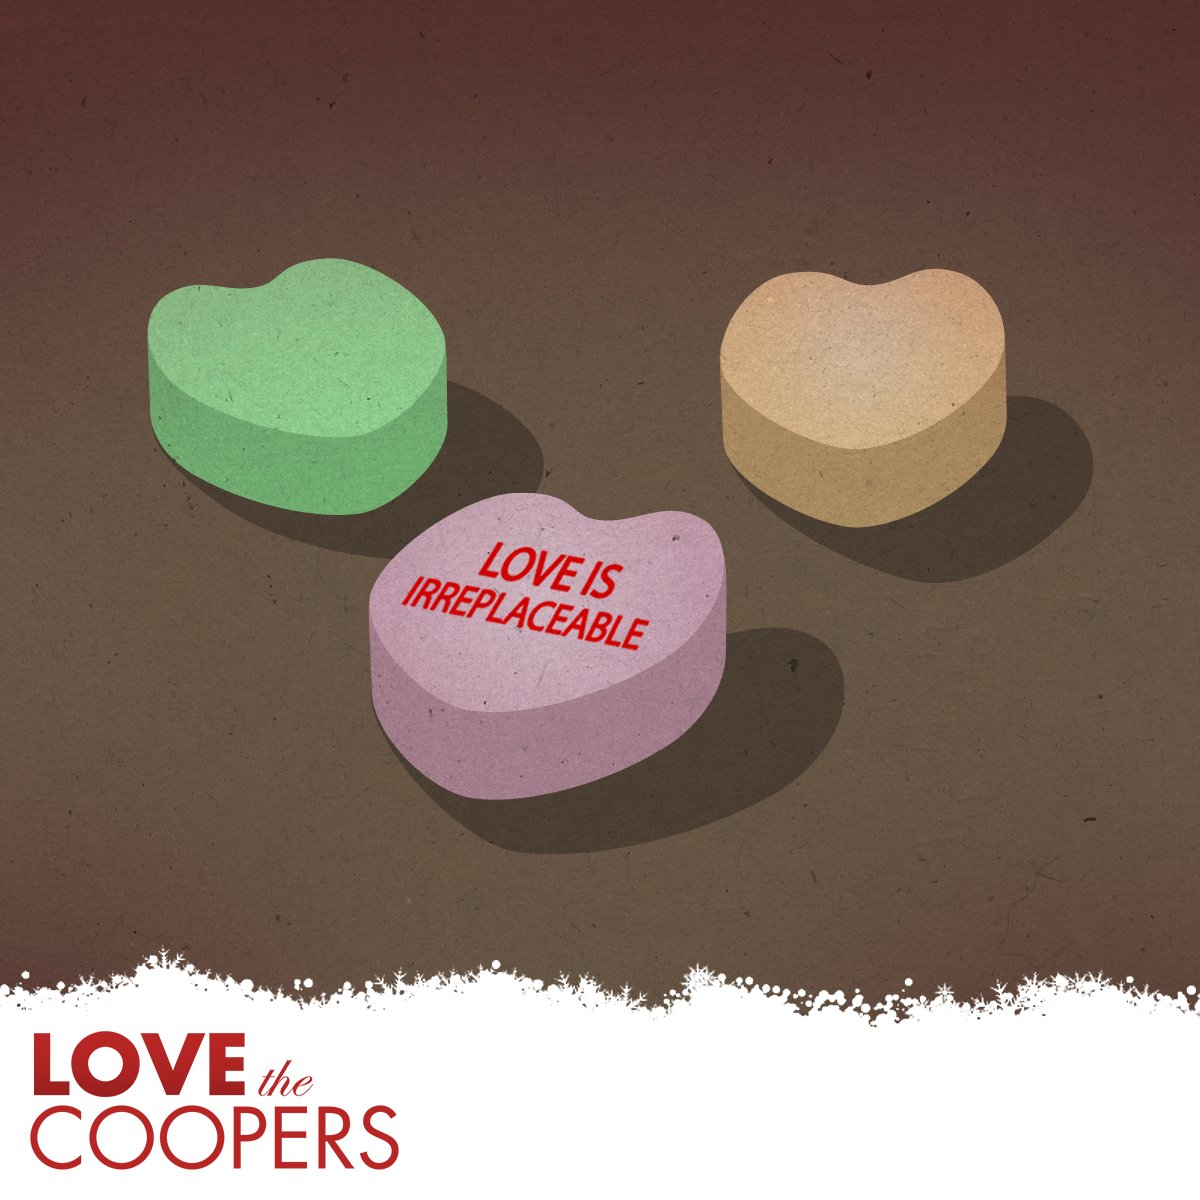 Once you've found it, there's no going back. #LovetheCoopers https://t.co/FvTHZxrwu6